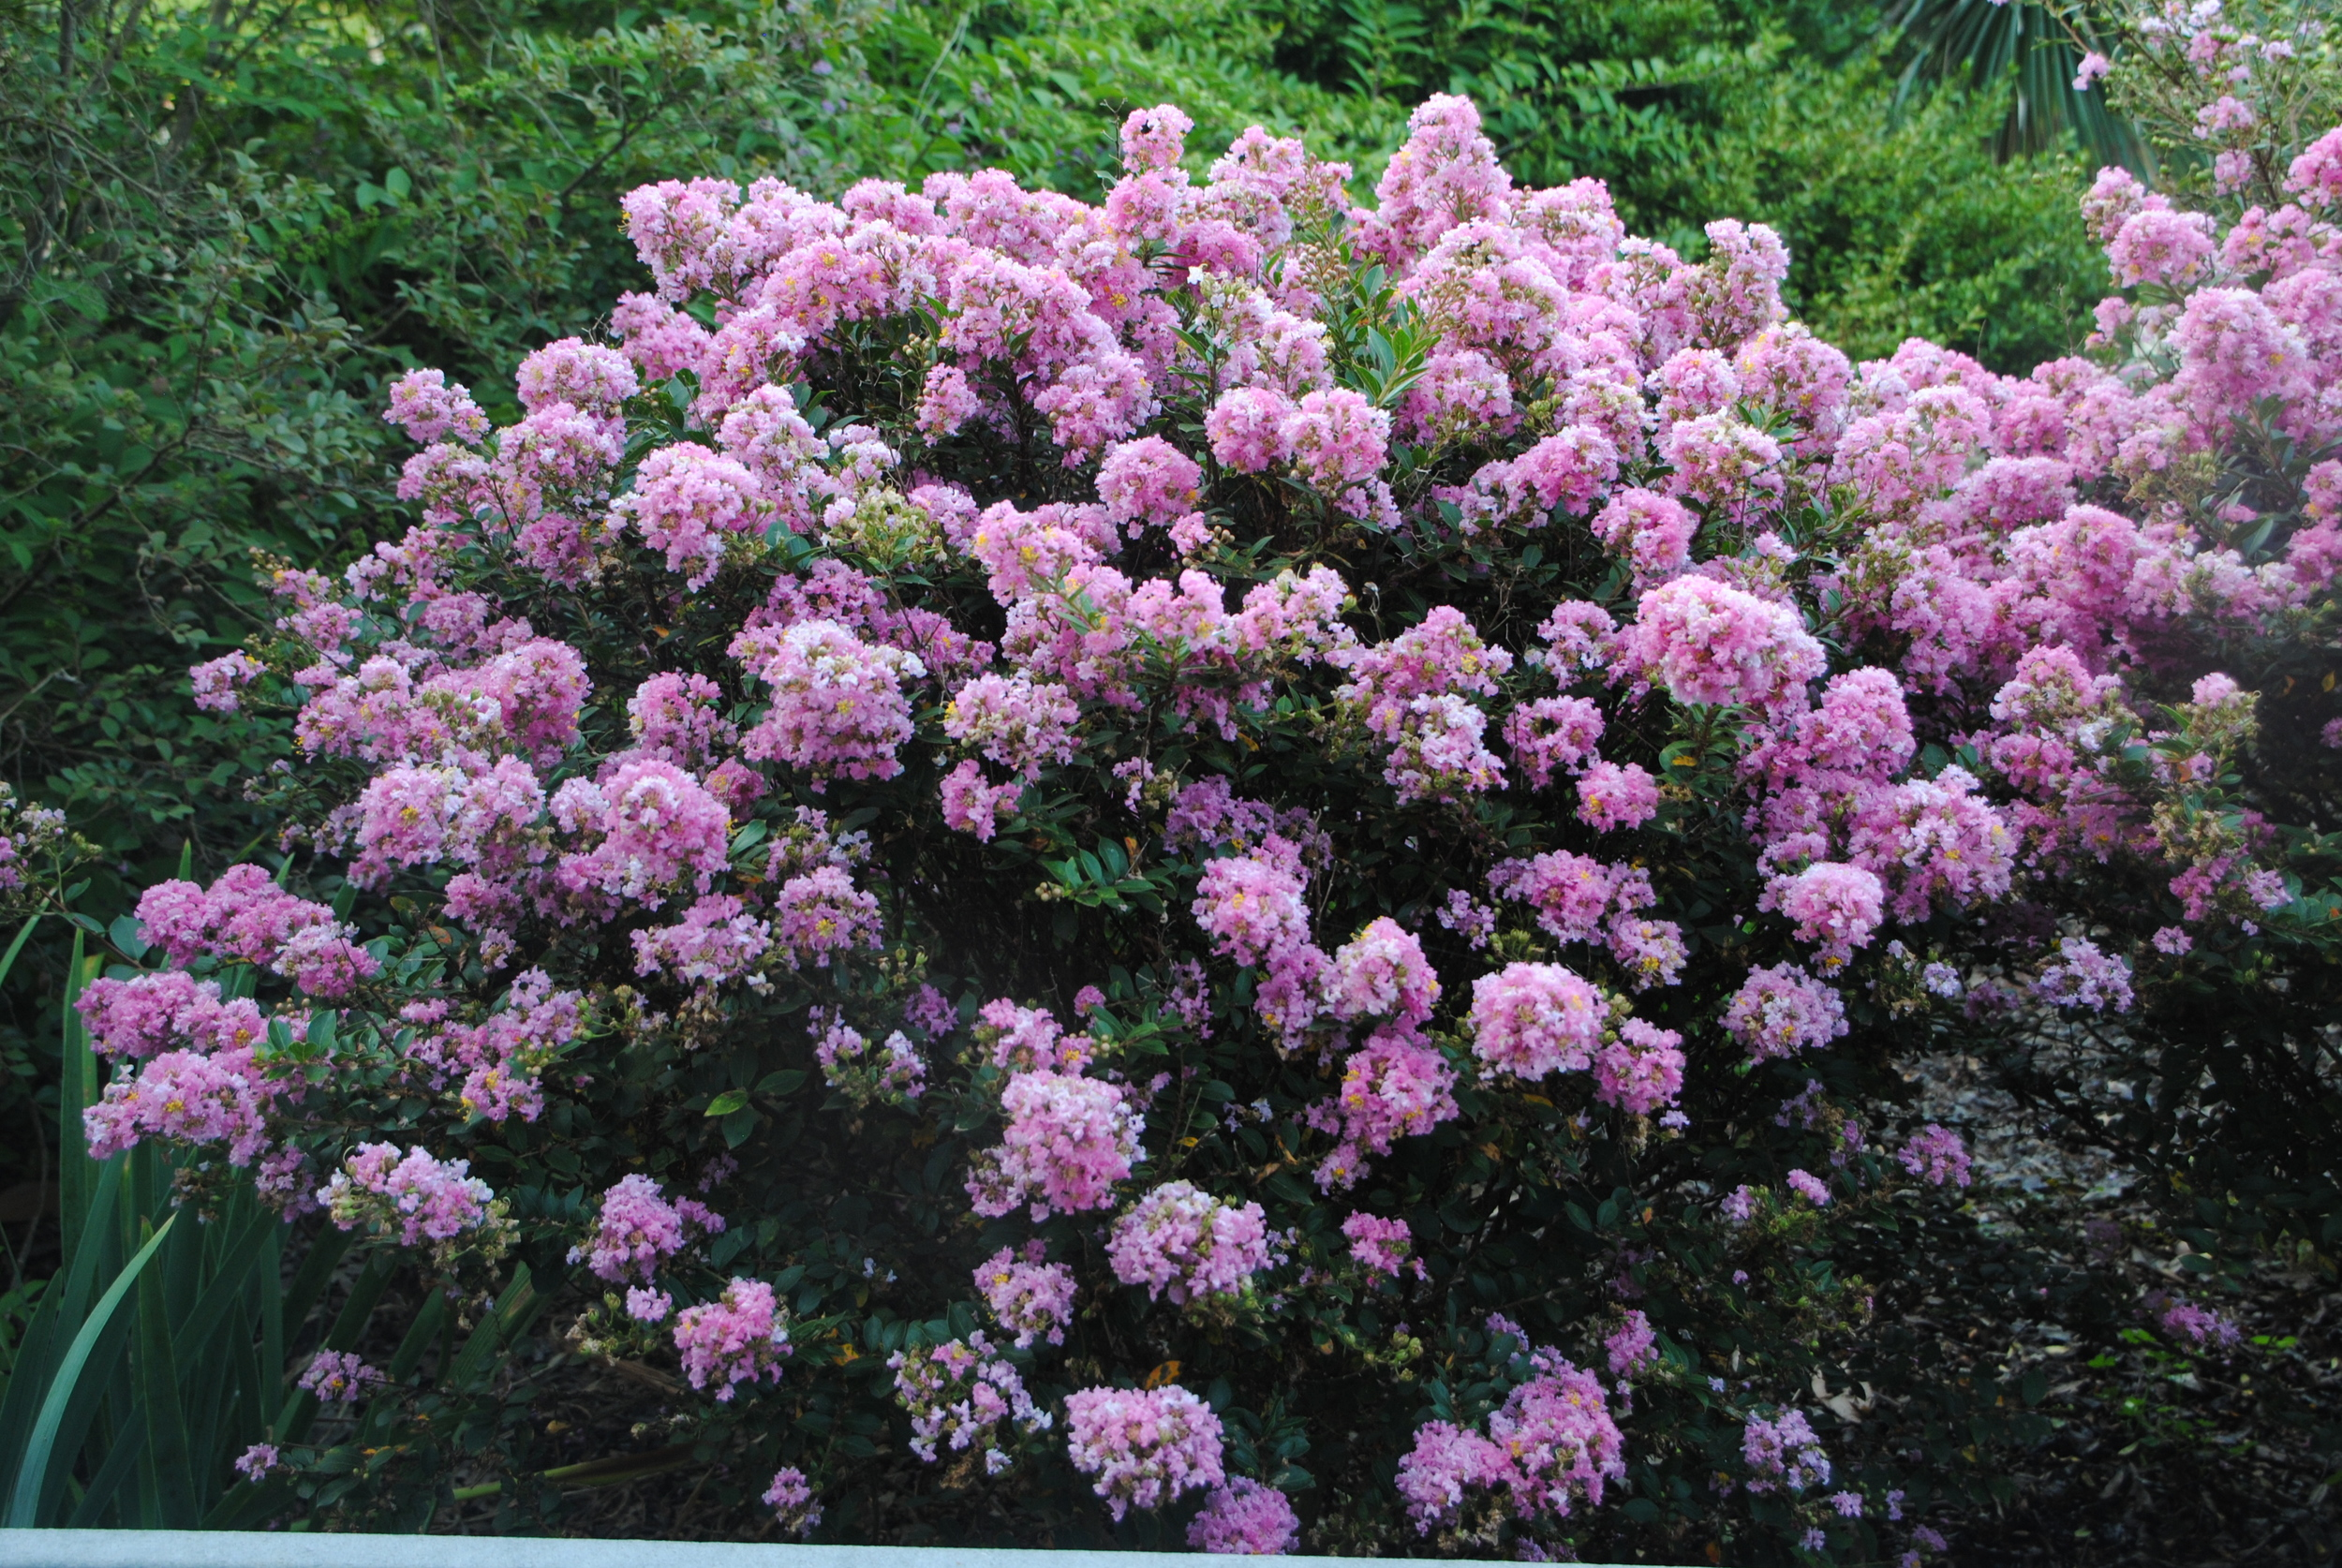 'Gamad V' makes a very uniform shrub, attractive in all seasons.